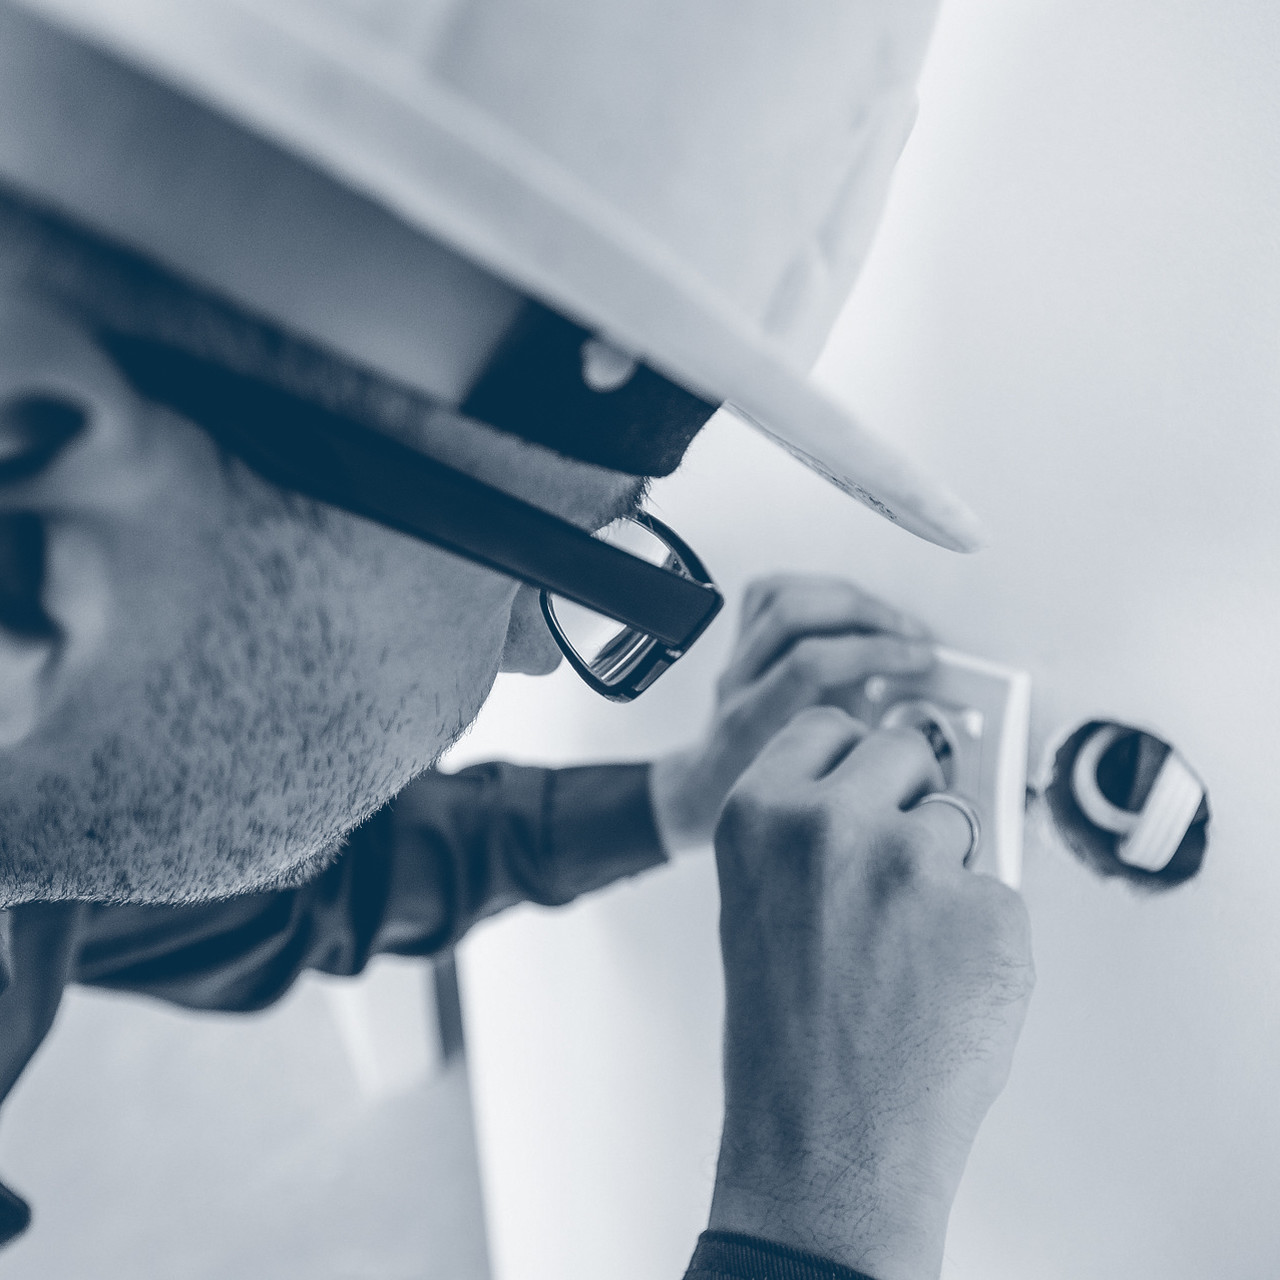 6 electricians for electric installations/cable pulling